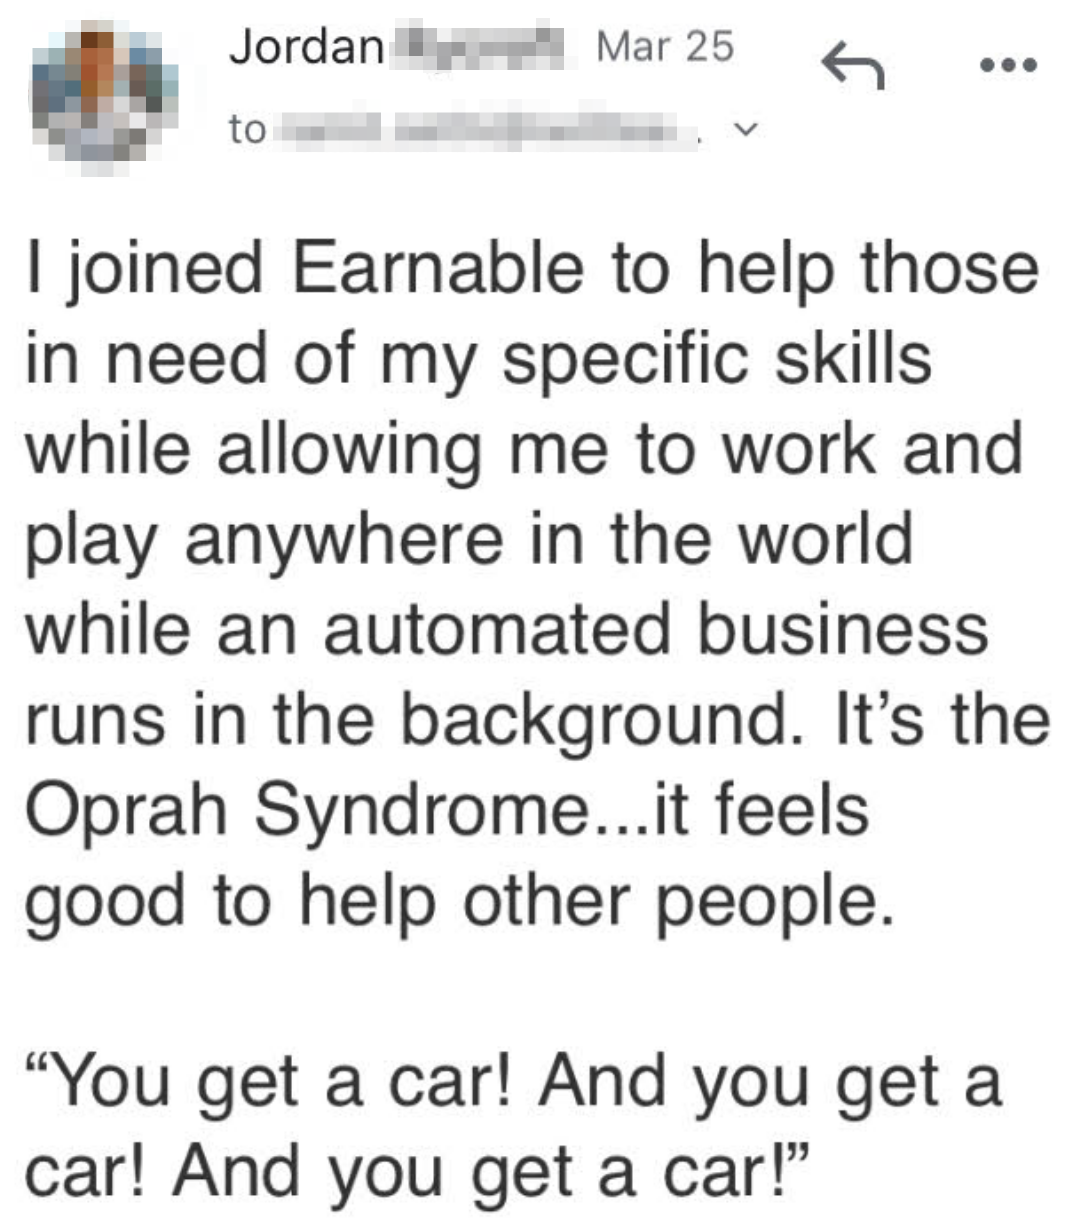 to help people in need